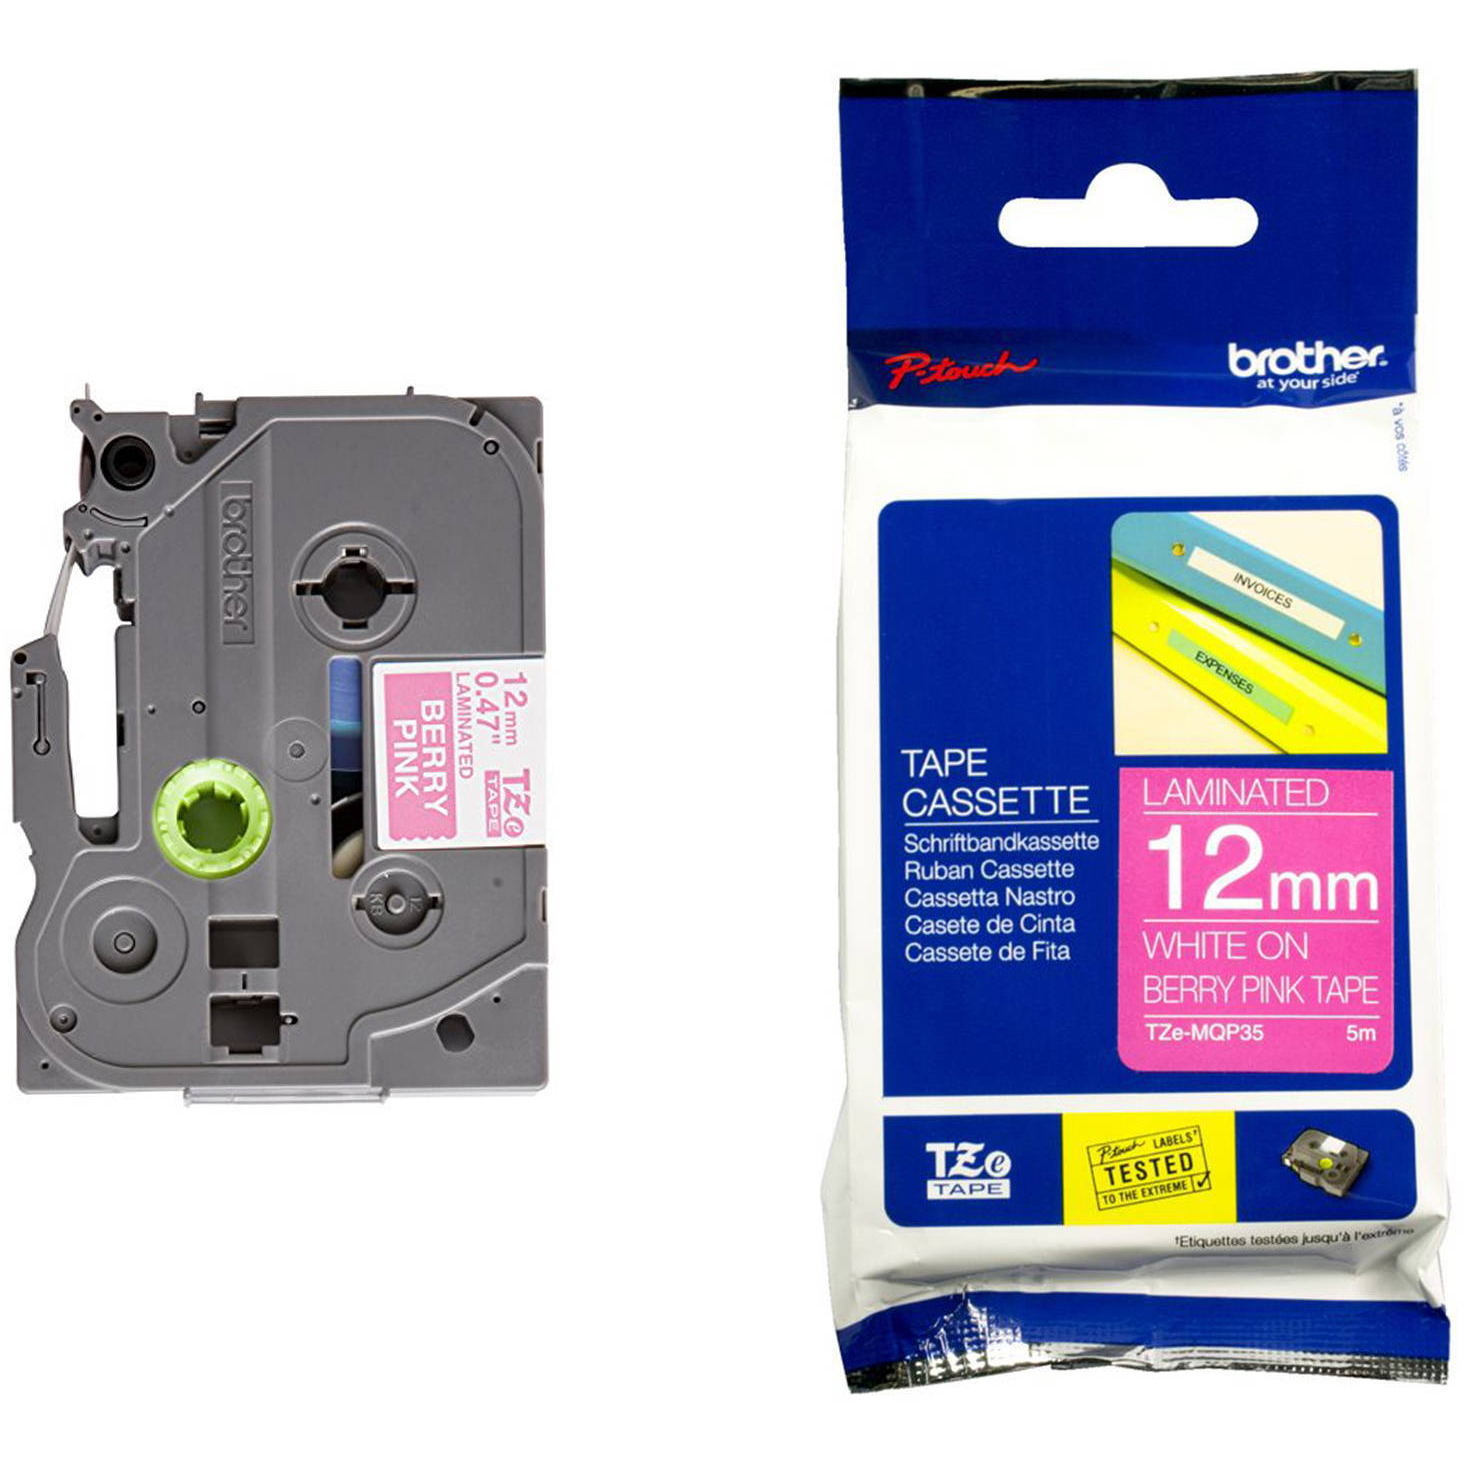 Original Brother TZeMQP35 White on Berry Pink 12mm x 5m Laminated P-Touch Label Tape (TZe-MQP35)